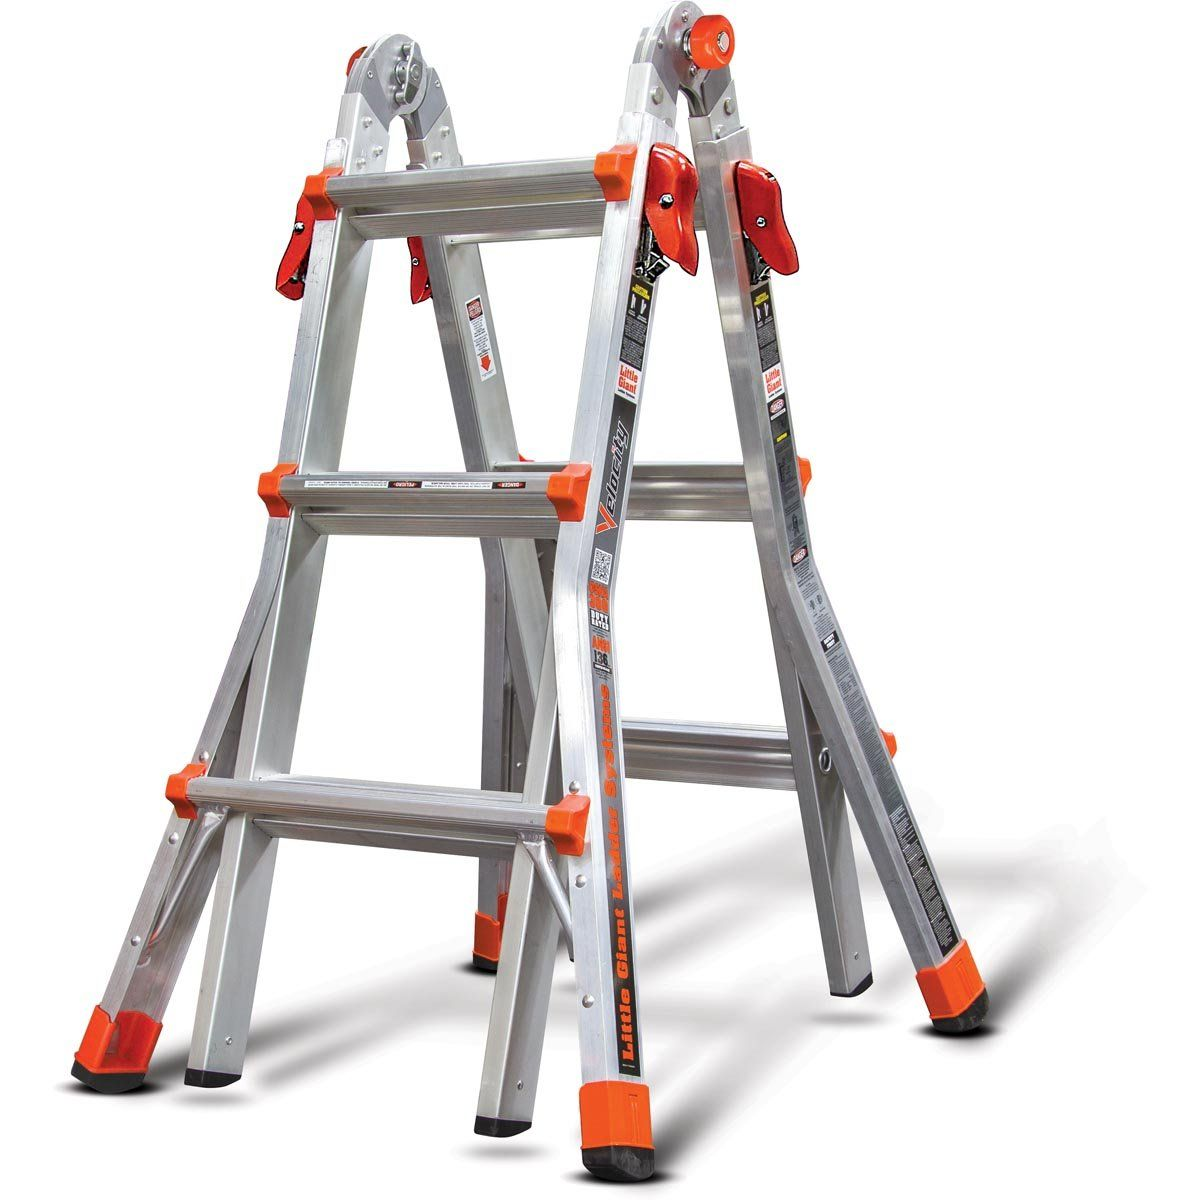 Velocity Ladder Type 1a Little Giants Ladder Multi Ladder